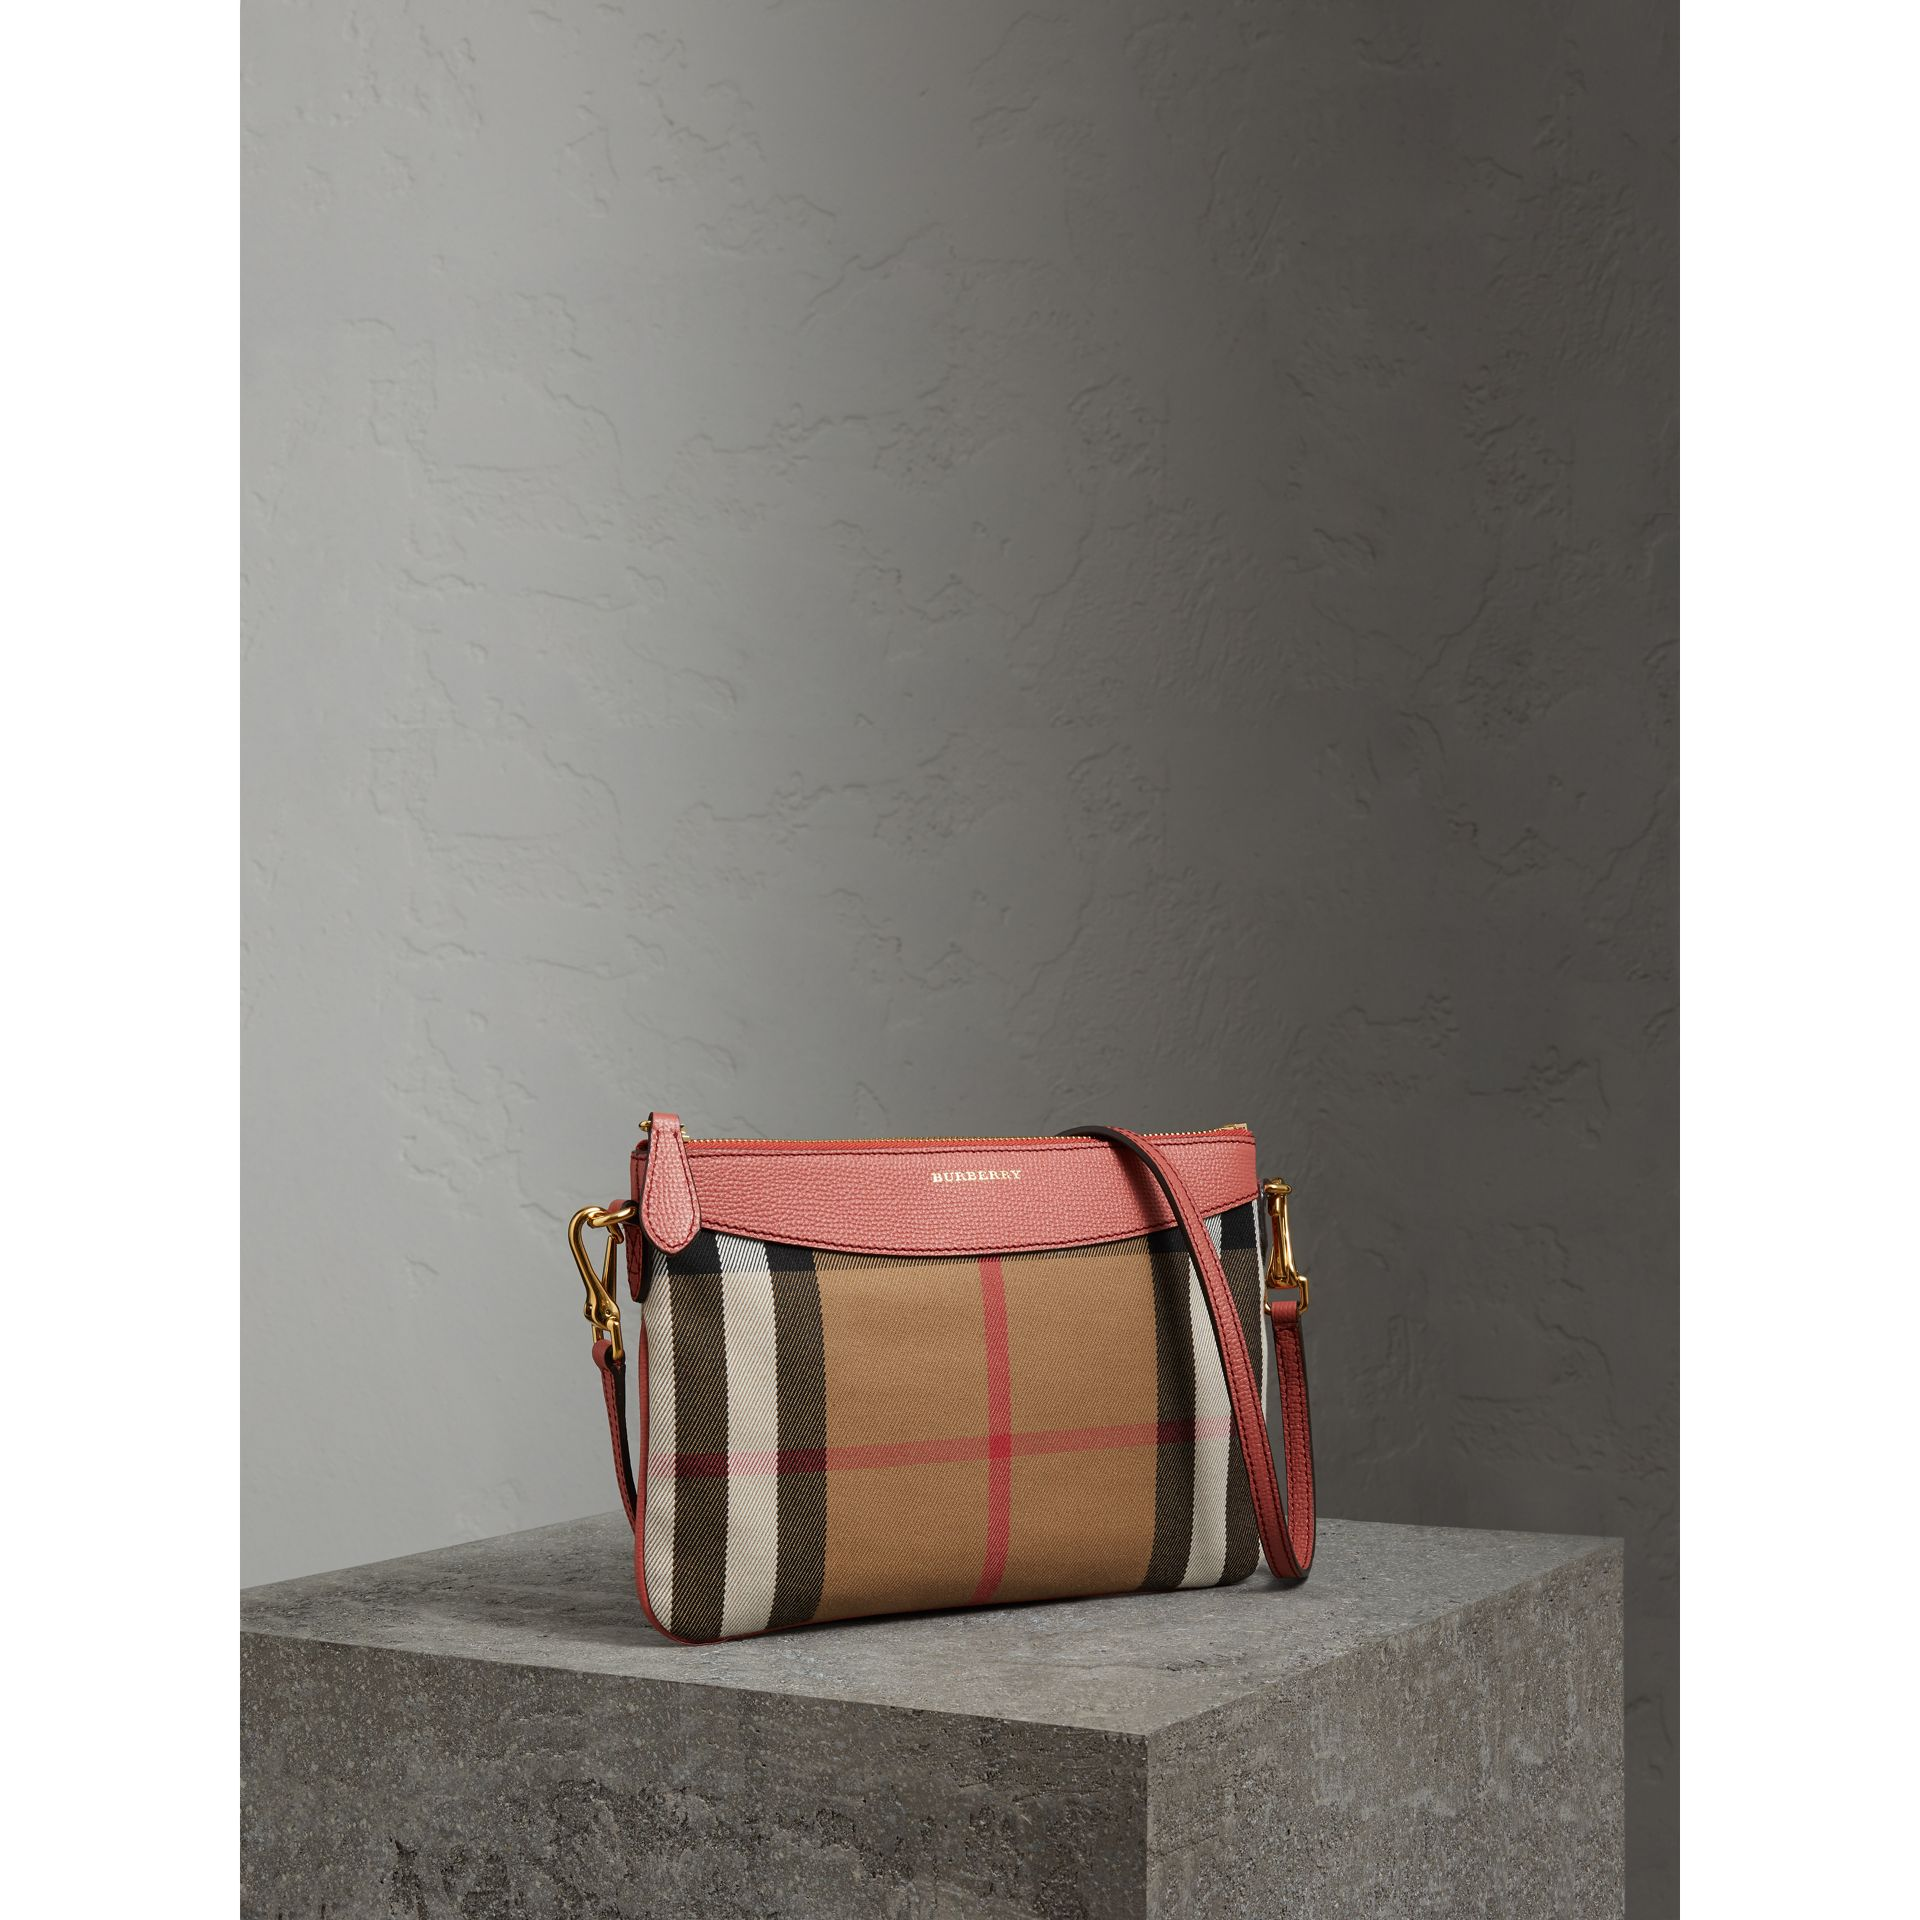 House Check and Leather Clutch Bag in Cinnamon Red - Women | Burberry Australia - gallery image 6